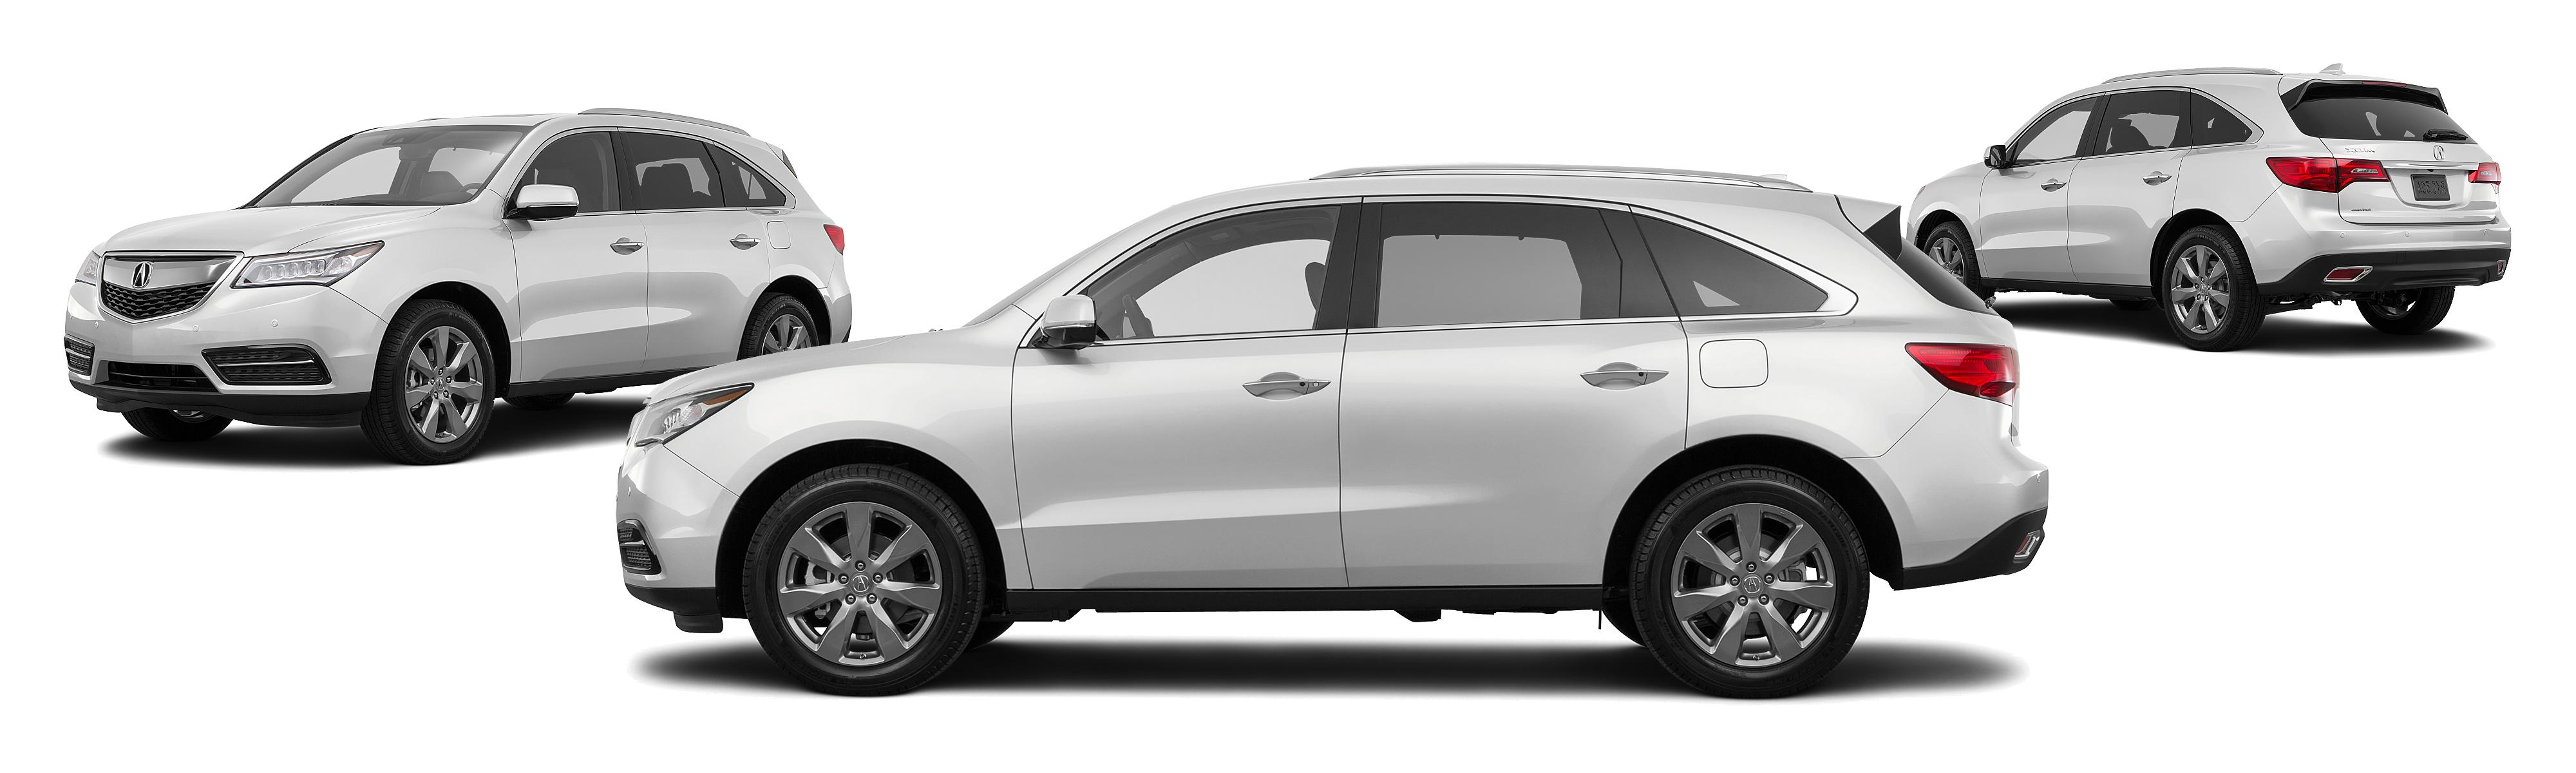 composite entertainment acura awd mdx lease silver large suv and advance w lunar metallic research groovecar package sh